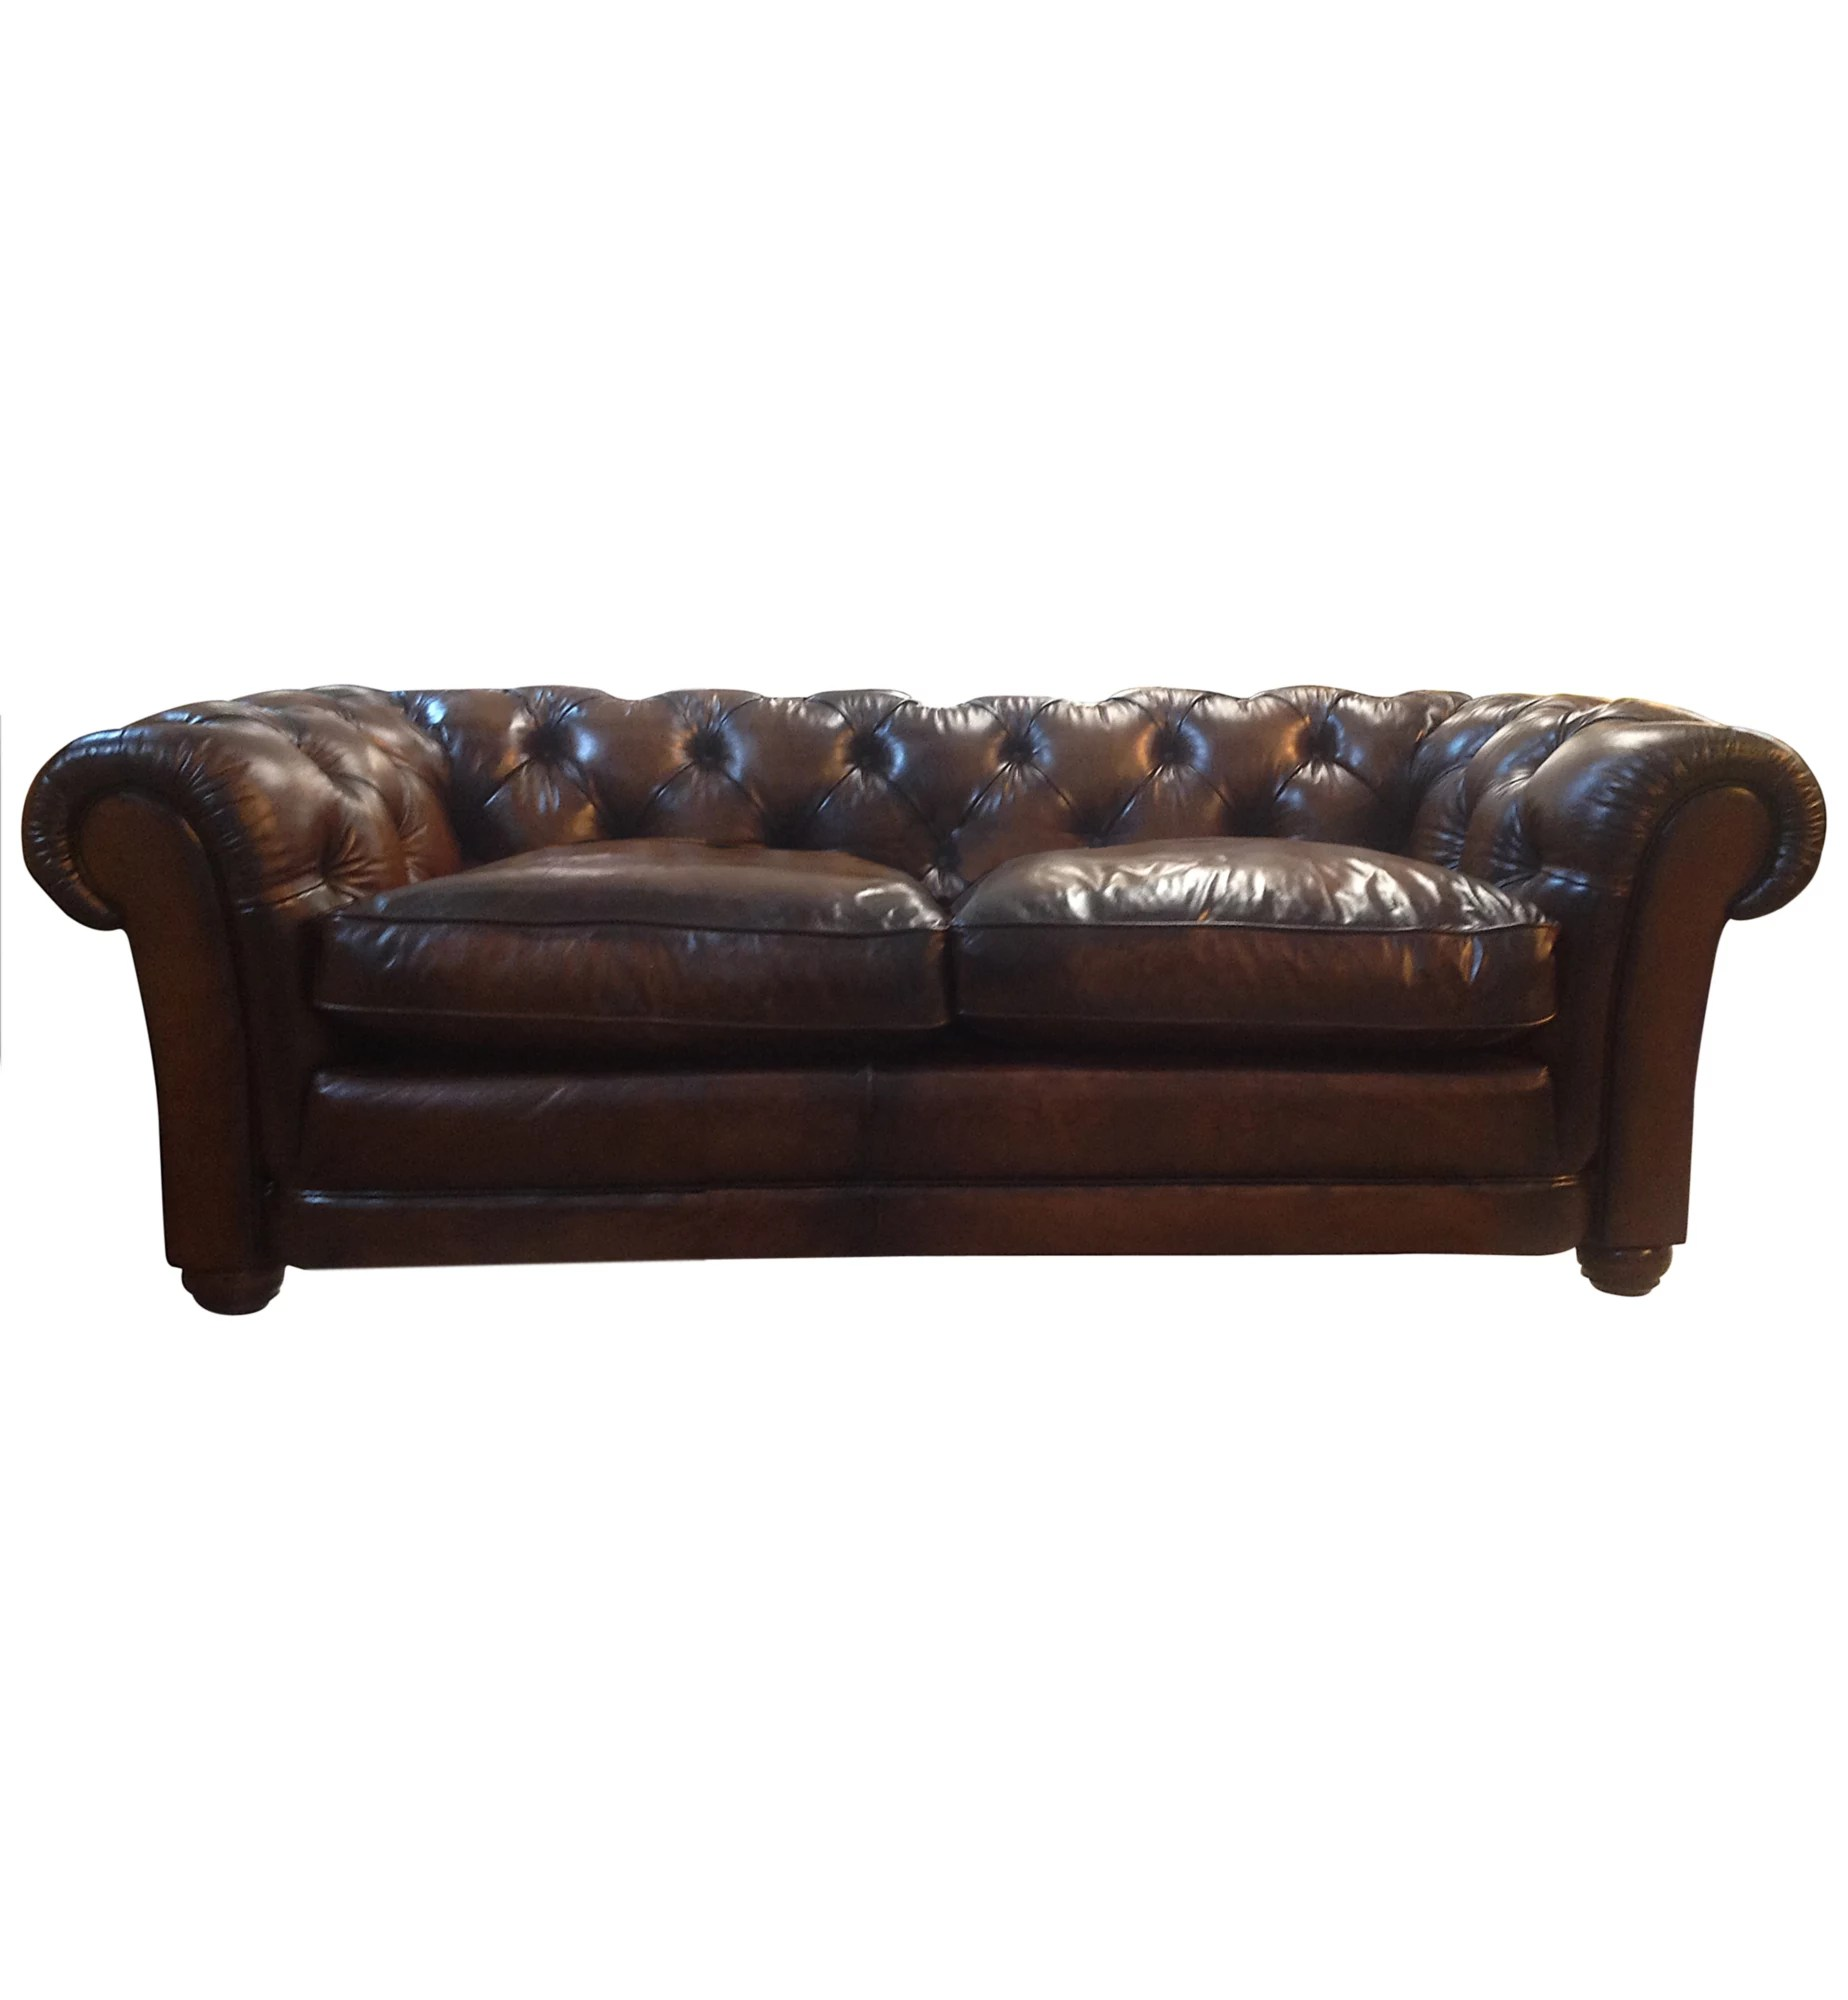 Leather Sofa Wellington Nz John Lewis Stanford Large Semi Aniline Leather Chesterfield Sofa